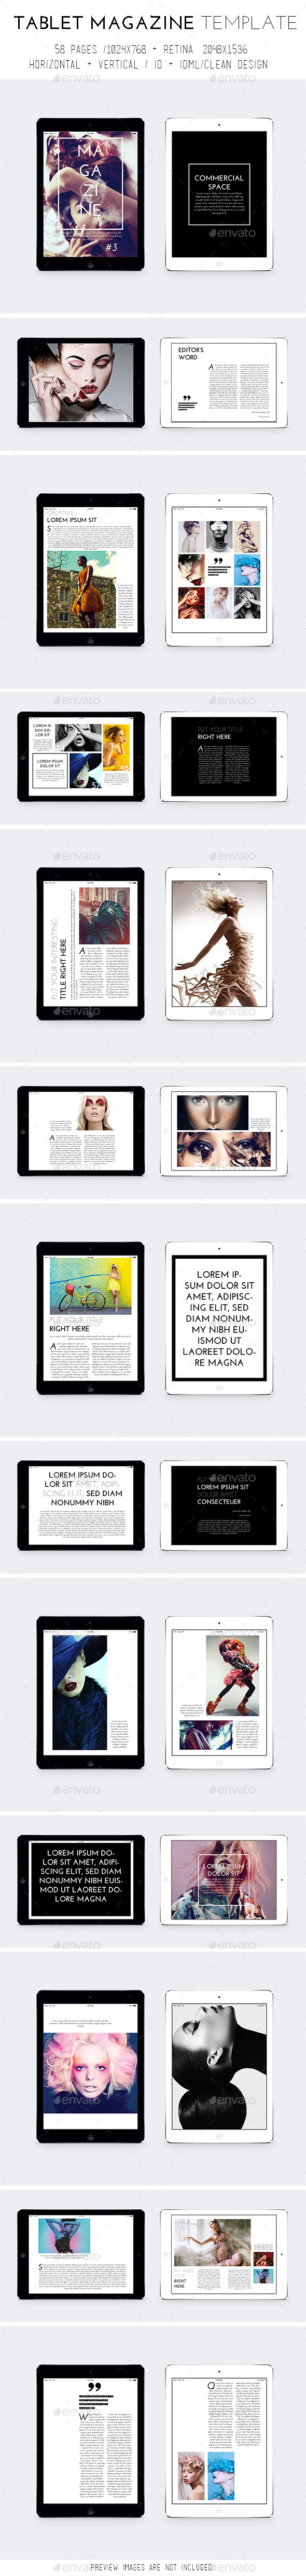 GraphicRiver Tablet Magazine Template 9496071